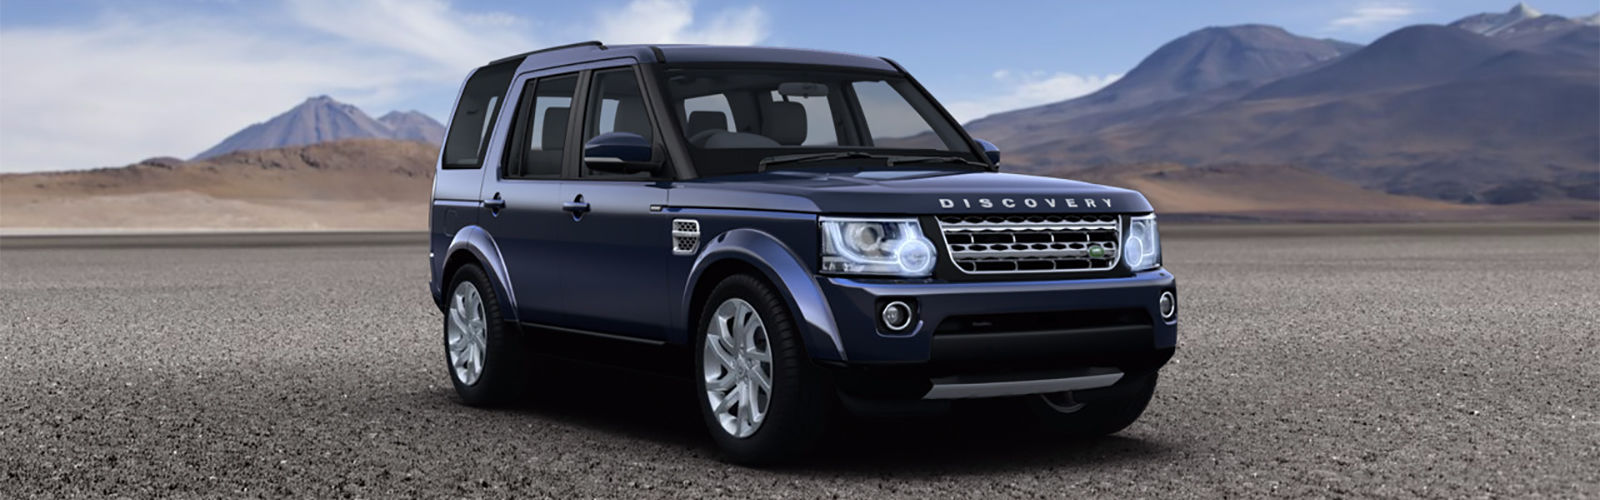 Land Rover Discovery Colours Guide And Prices Carwow